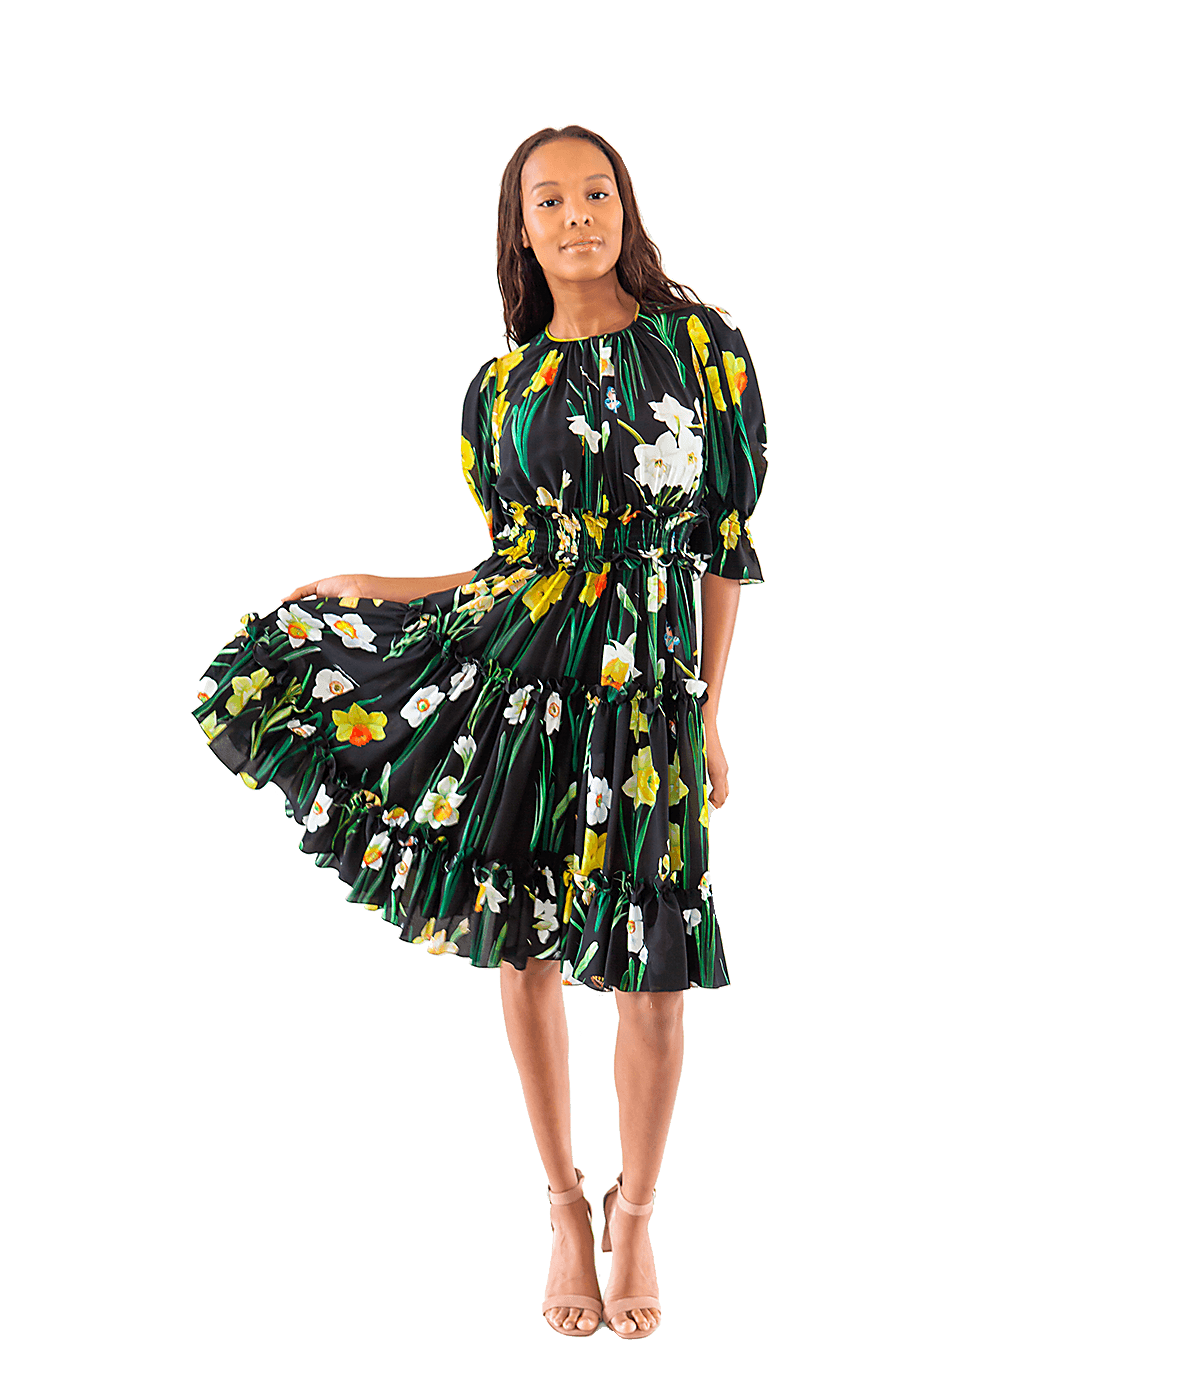 Daffodil-Print Silk Crepe de Chine Dress - Lady Jetset